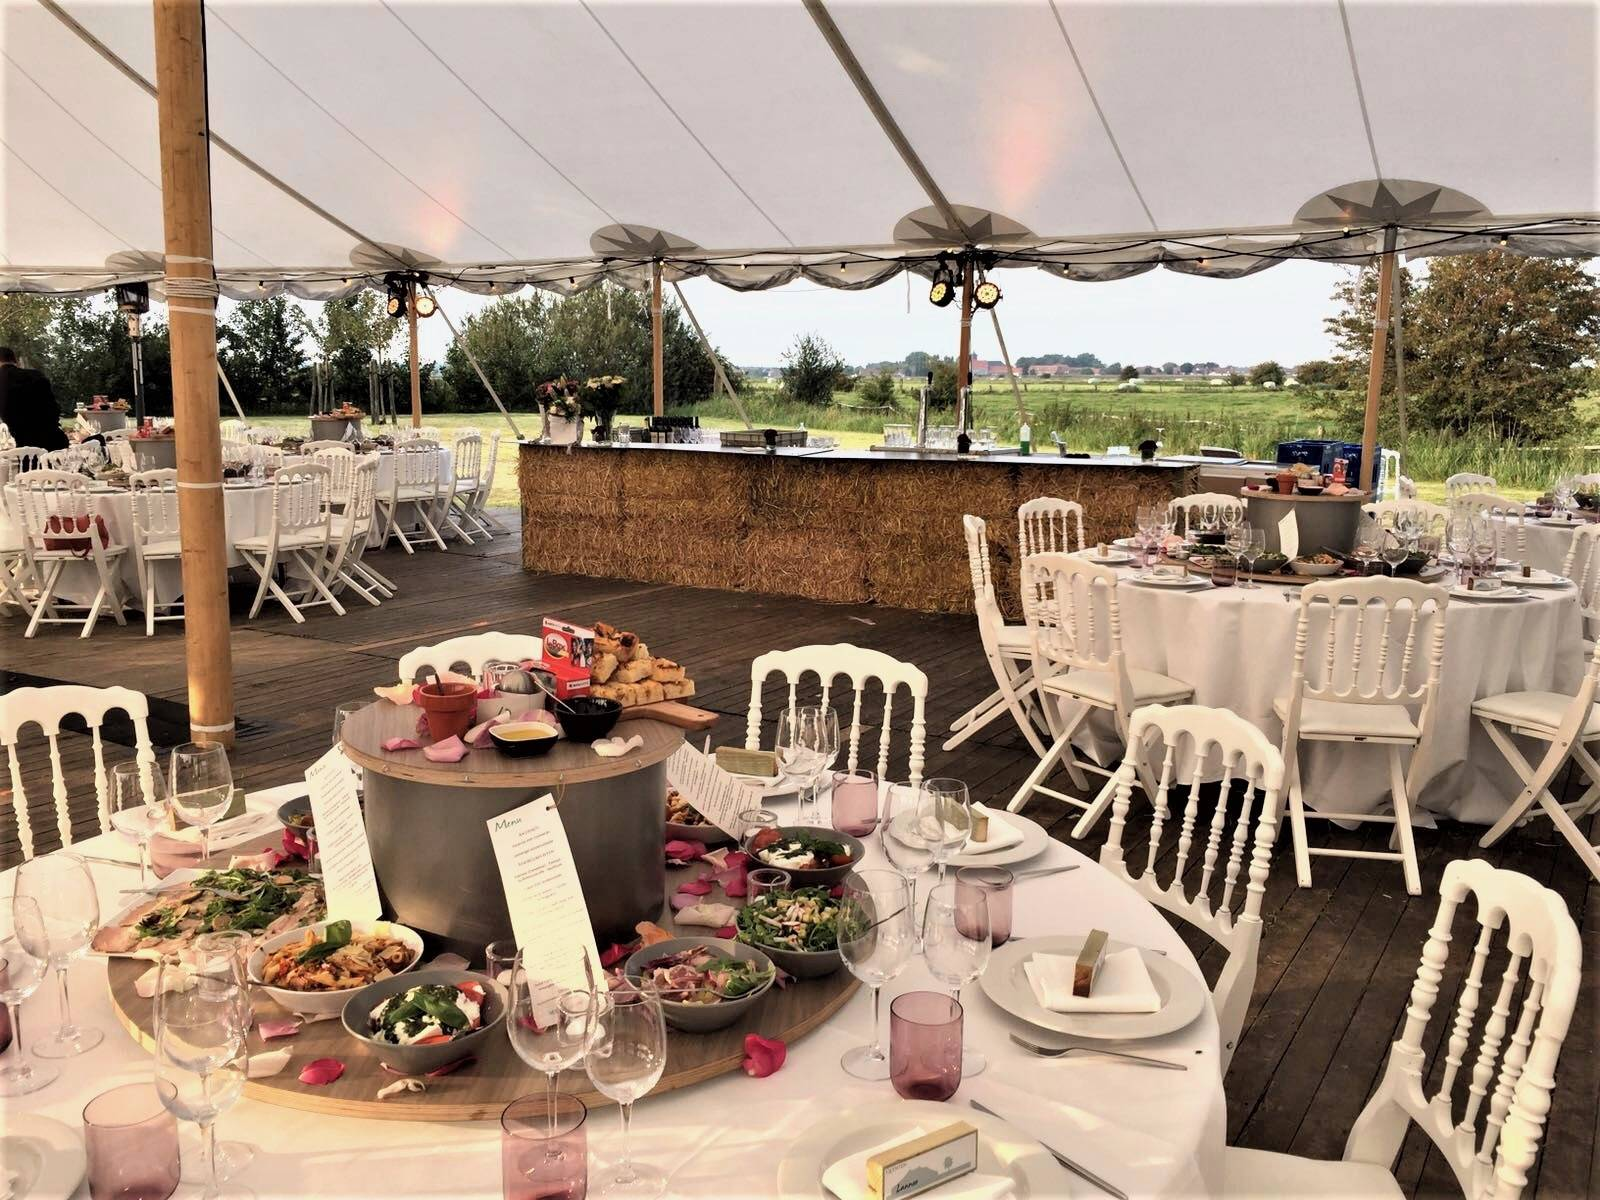 Insieme - Catering - Cateraar - Traiteur - House of Events - 7